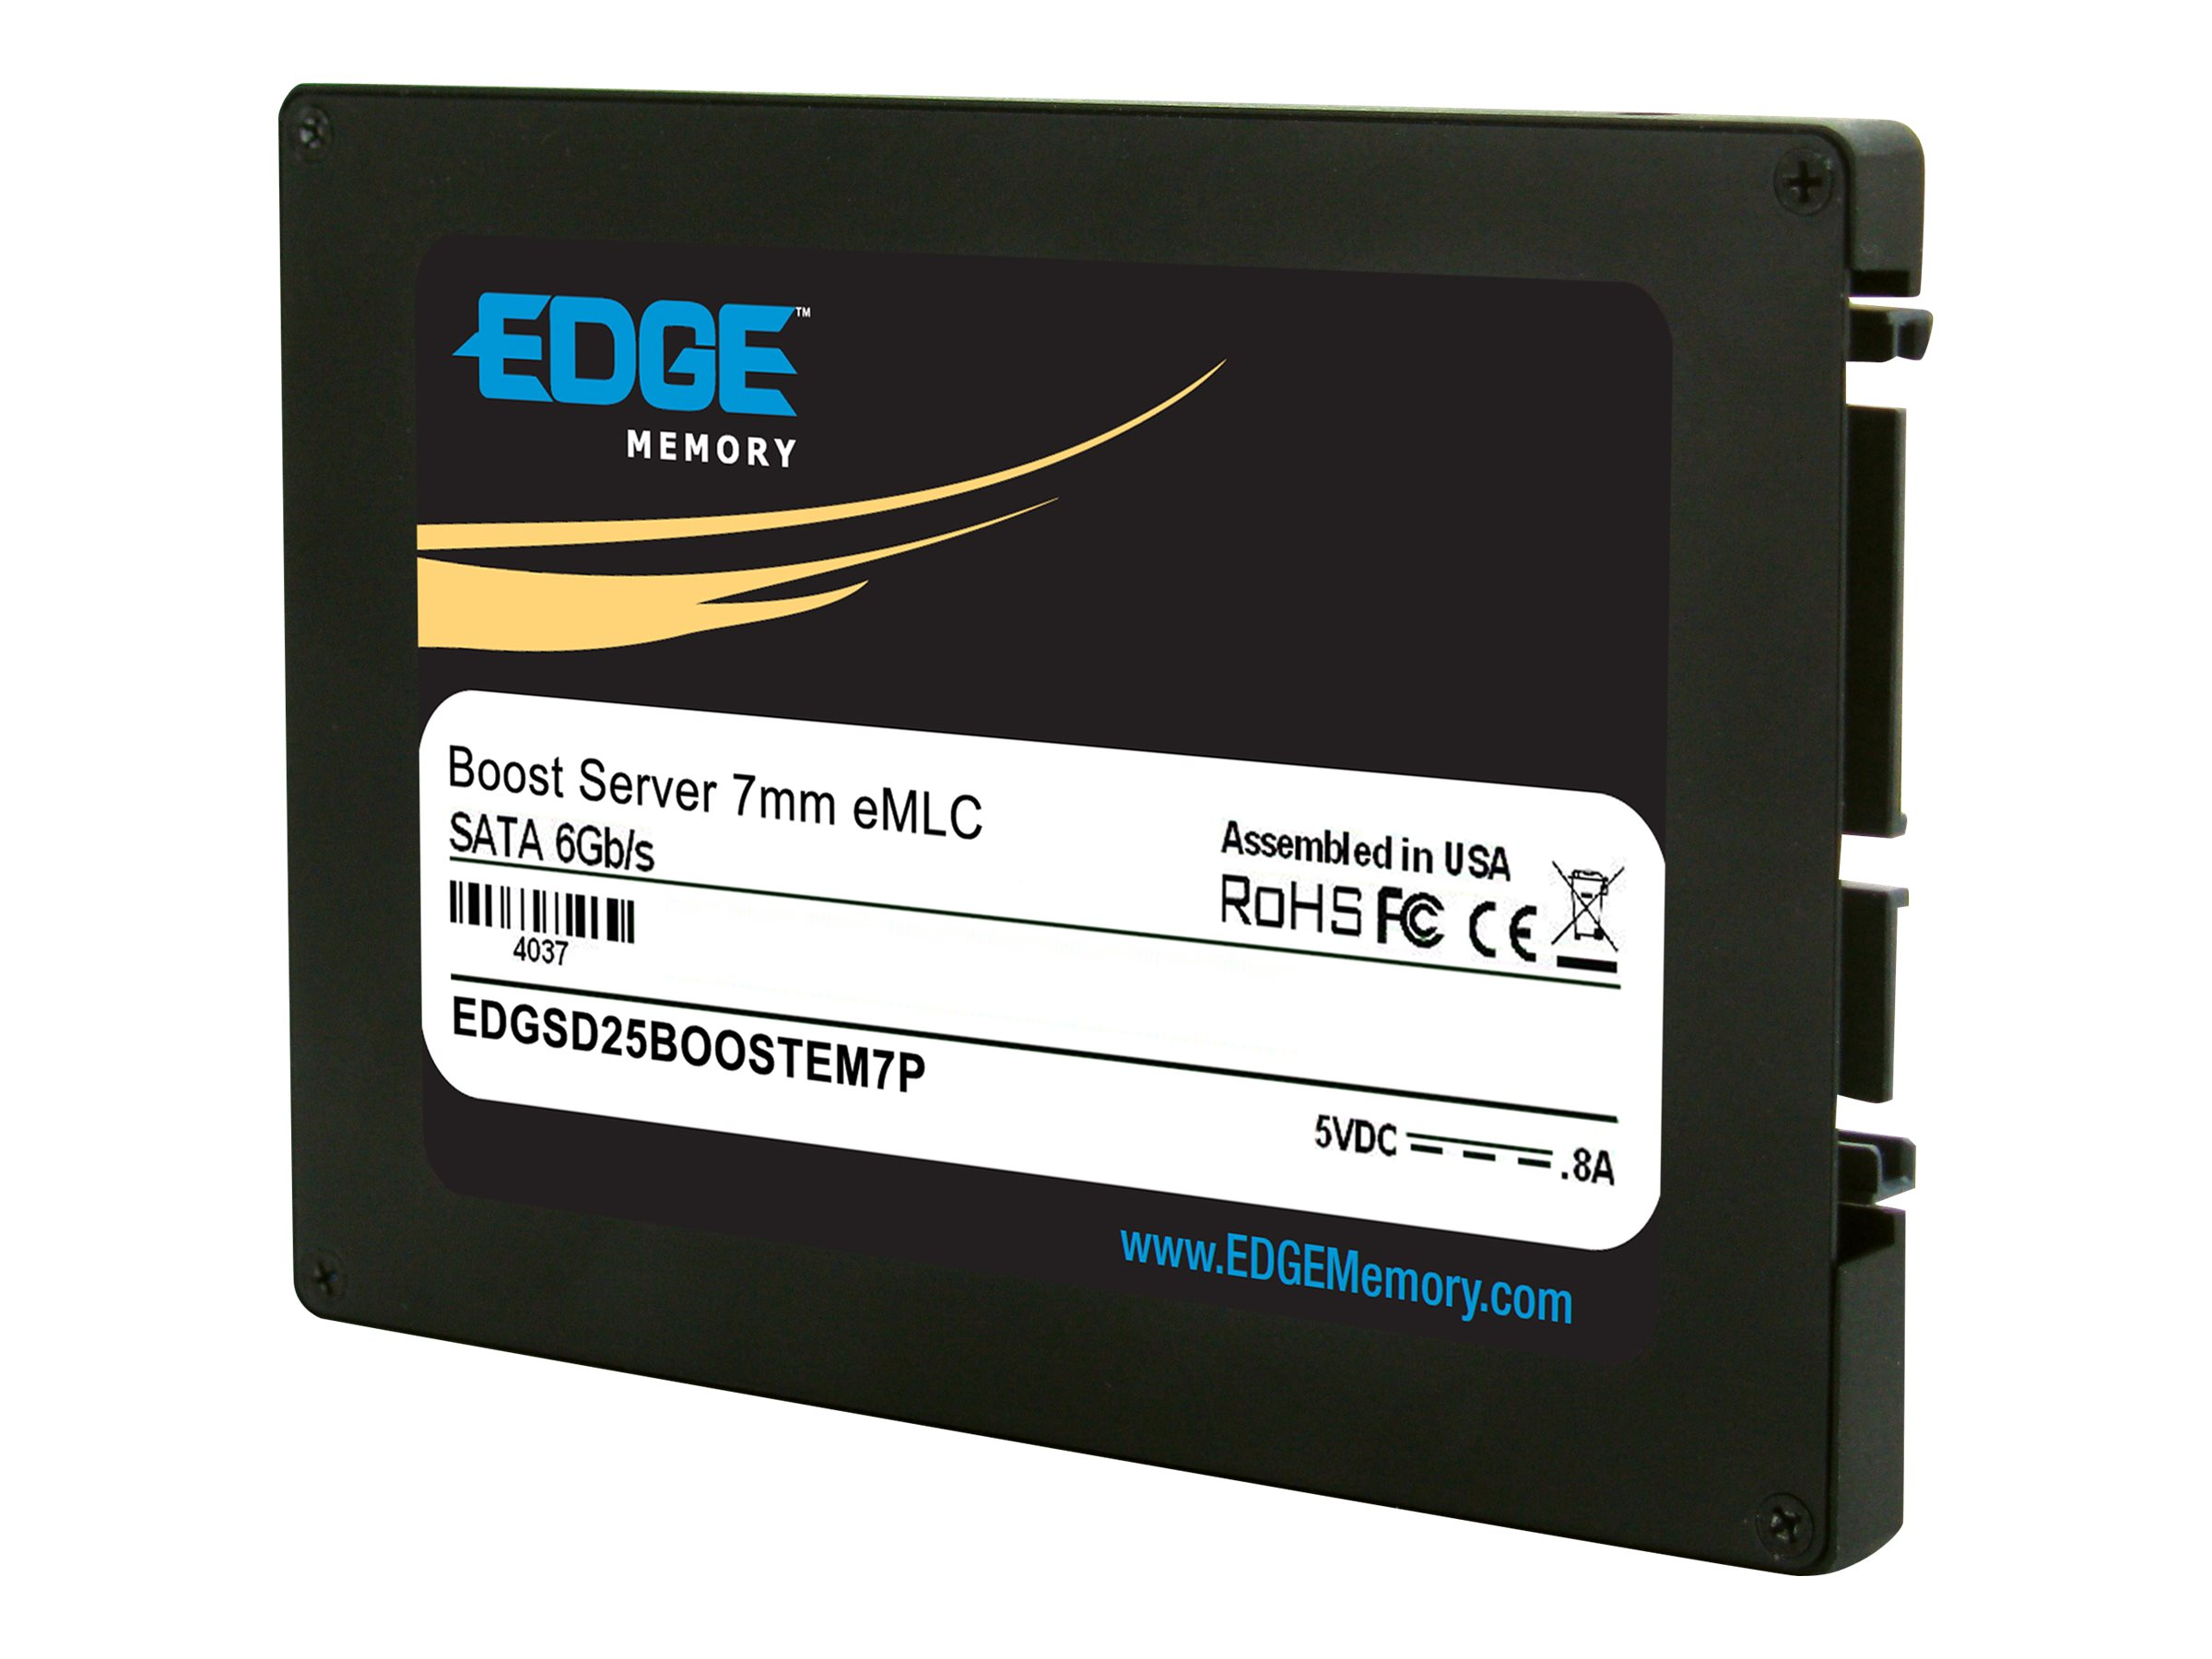 Edge 400GB Boost Server SATA 6Gb s eMLC 2.5 7mm Internal Solid State Drive, PE241360